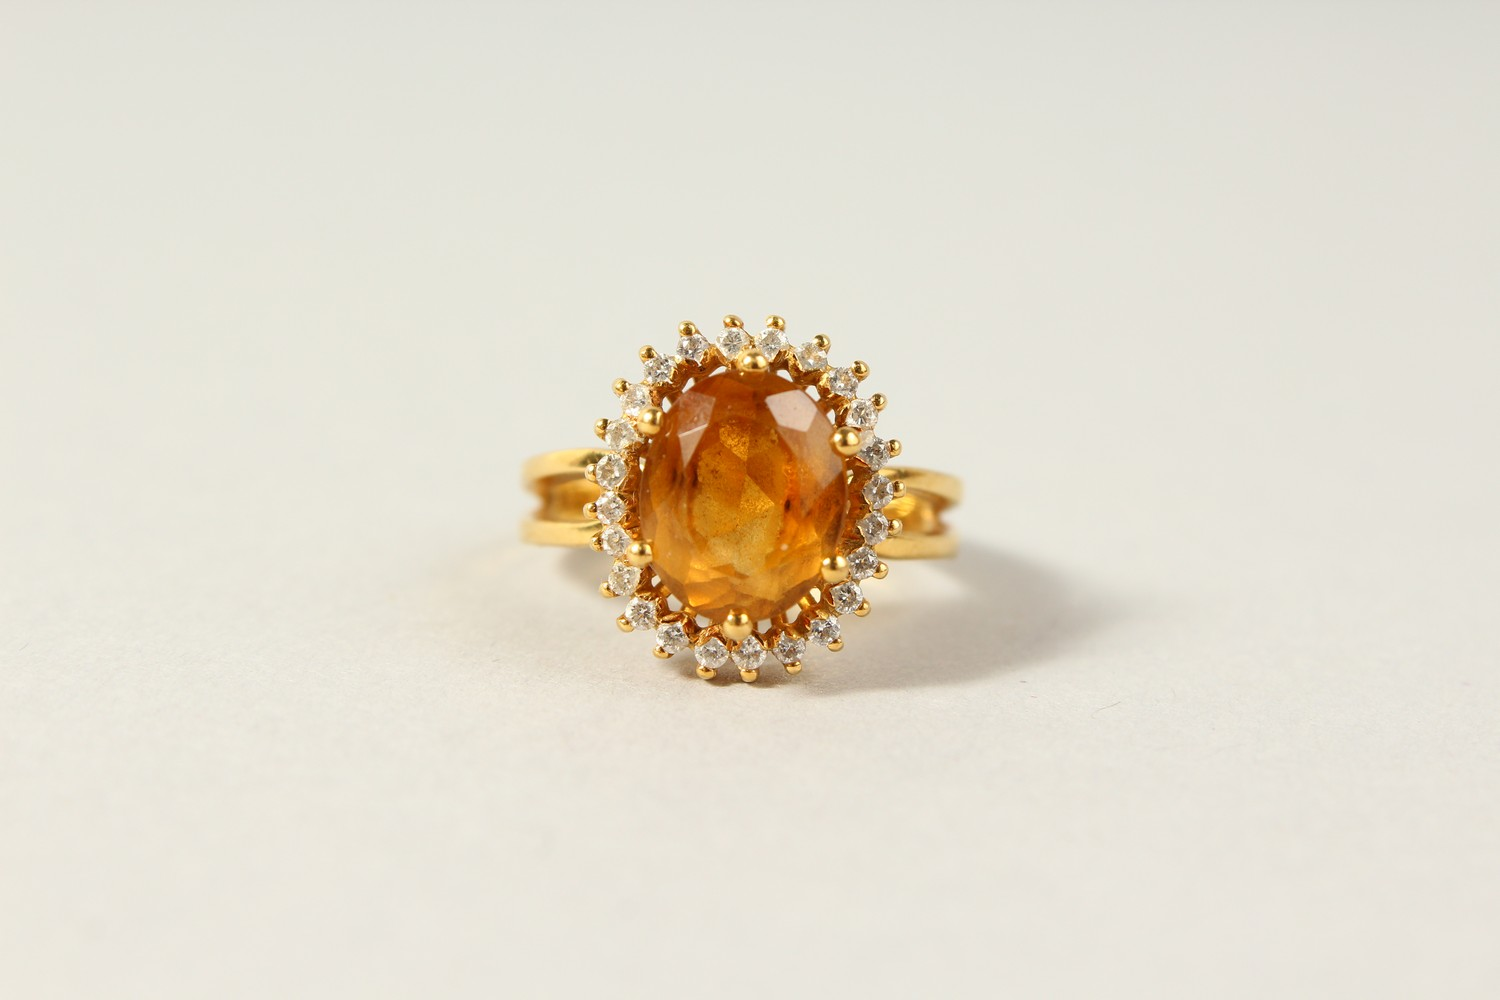 Lot 1751 - AN 18CT GOLD, DIAMOND AND CITRINE RING.